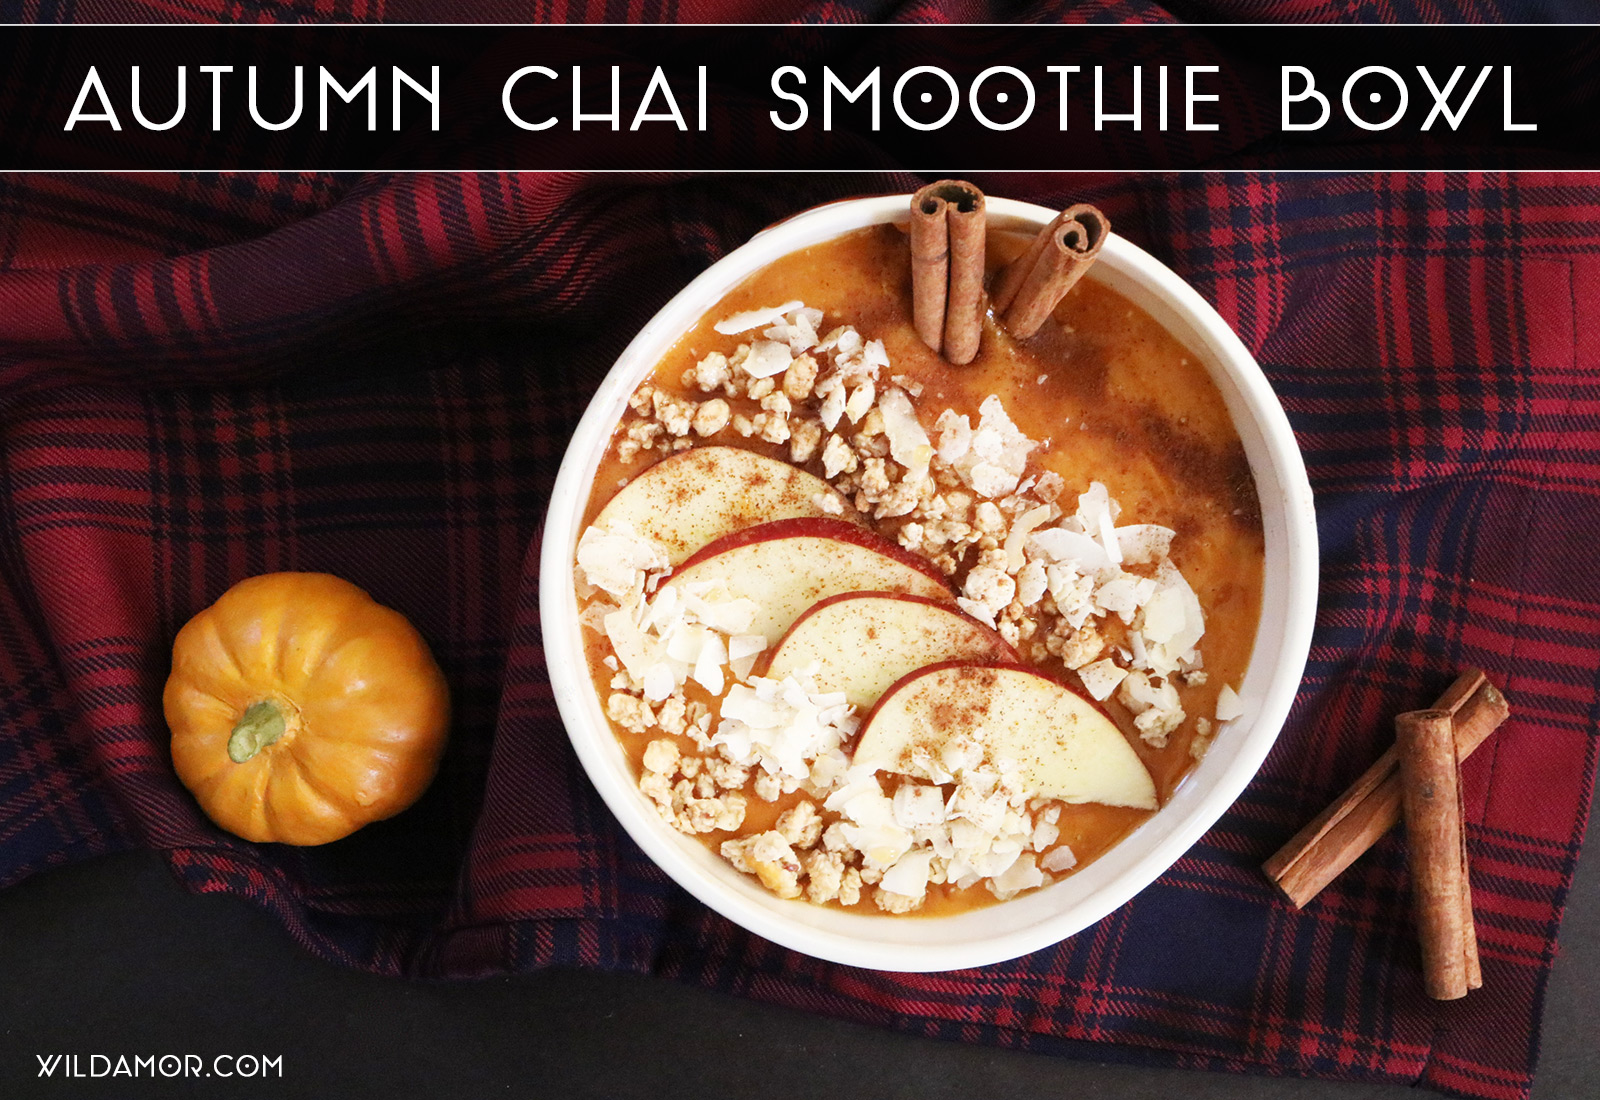 Autumn Chai Smoothie Bowl